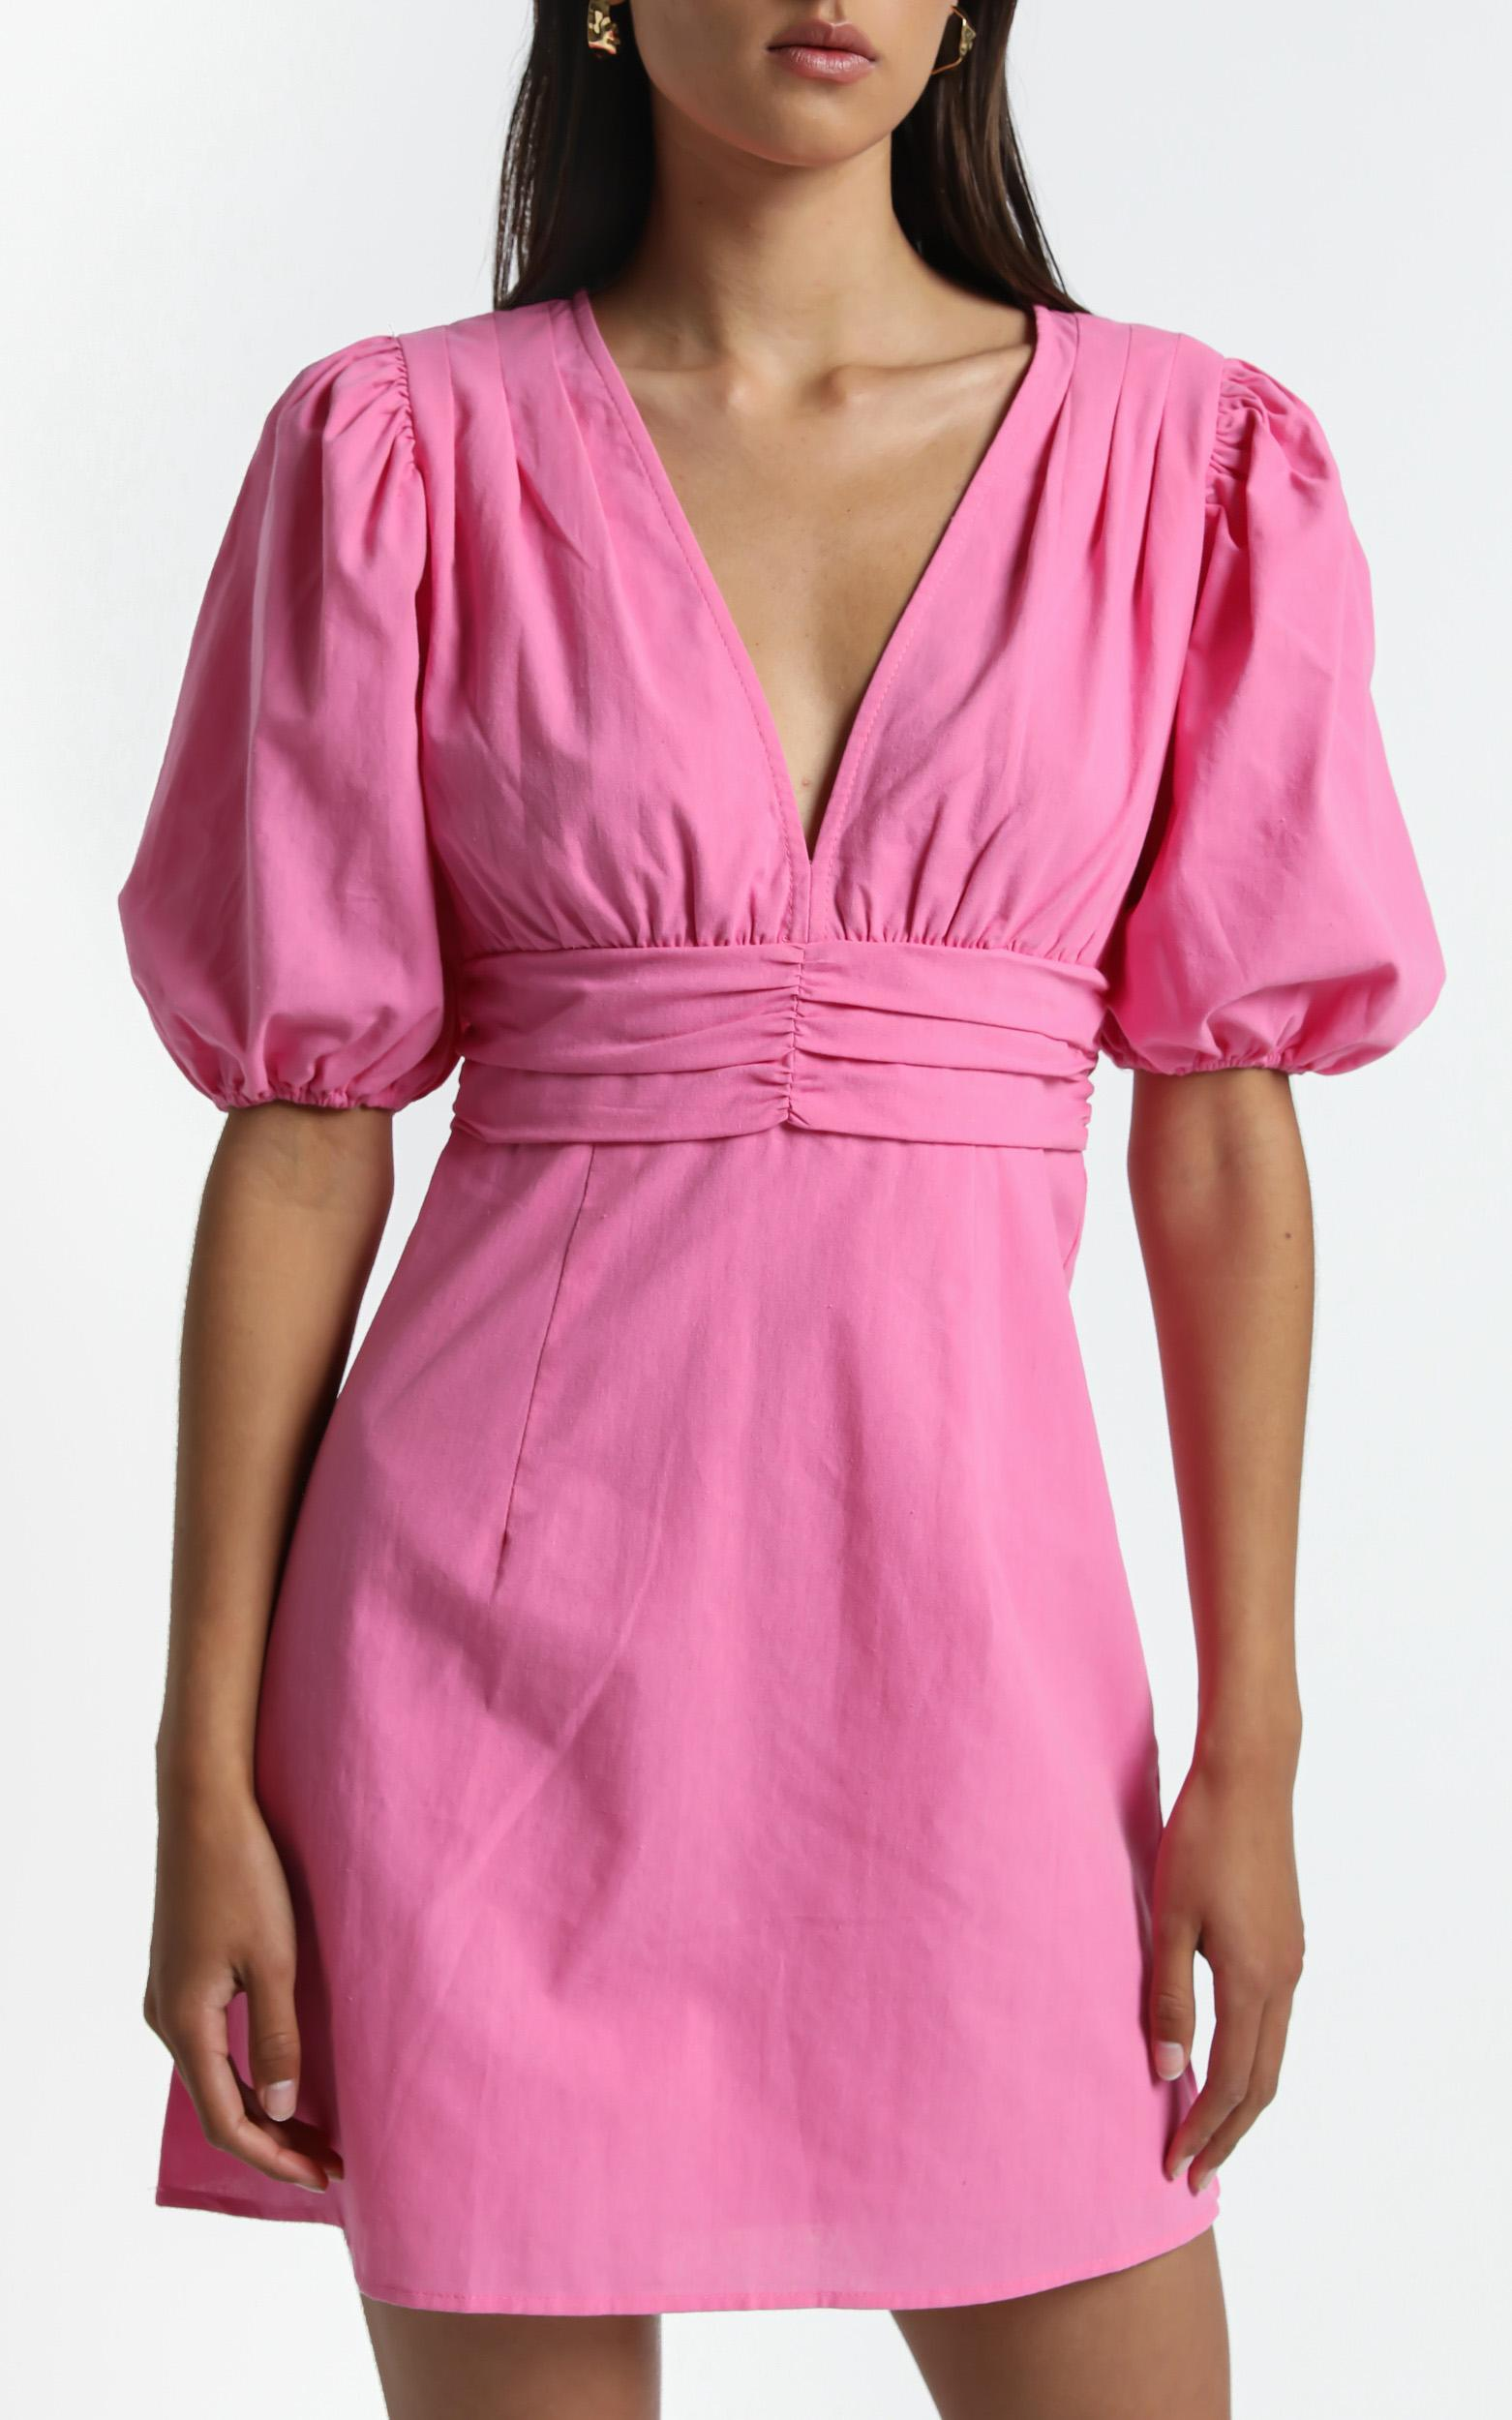 Sunray Dress in Pink - 6 (XS), Pink, hi-res image number null